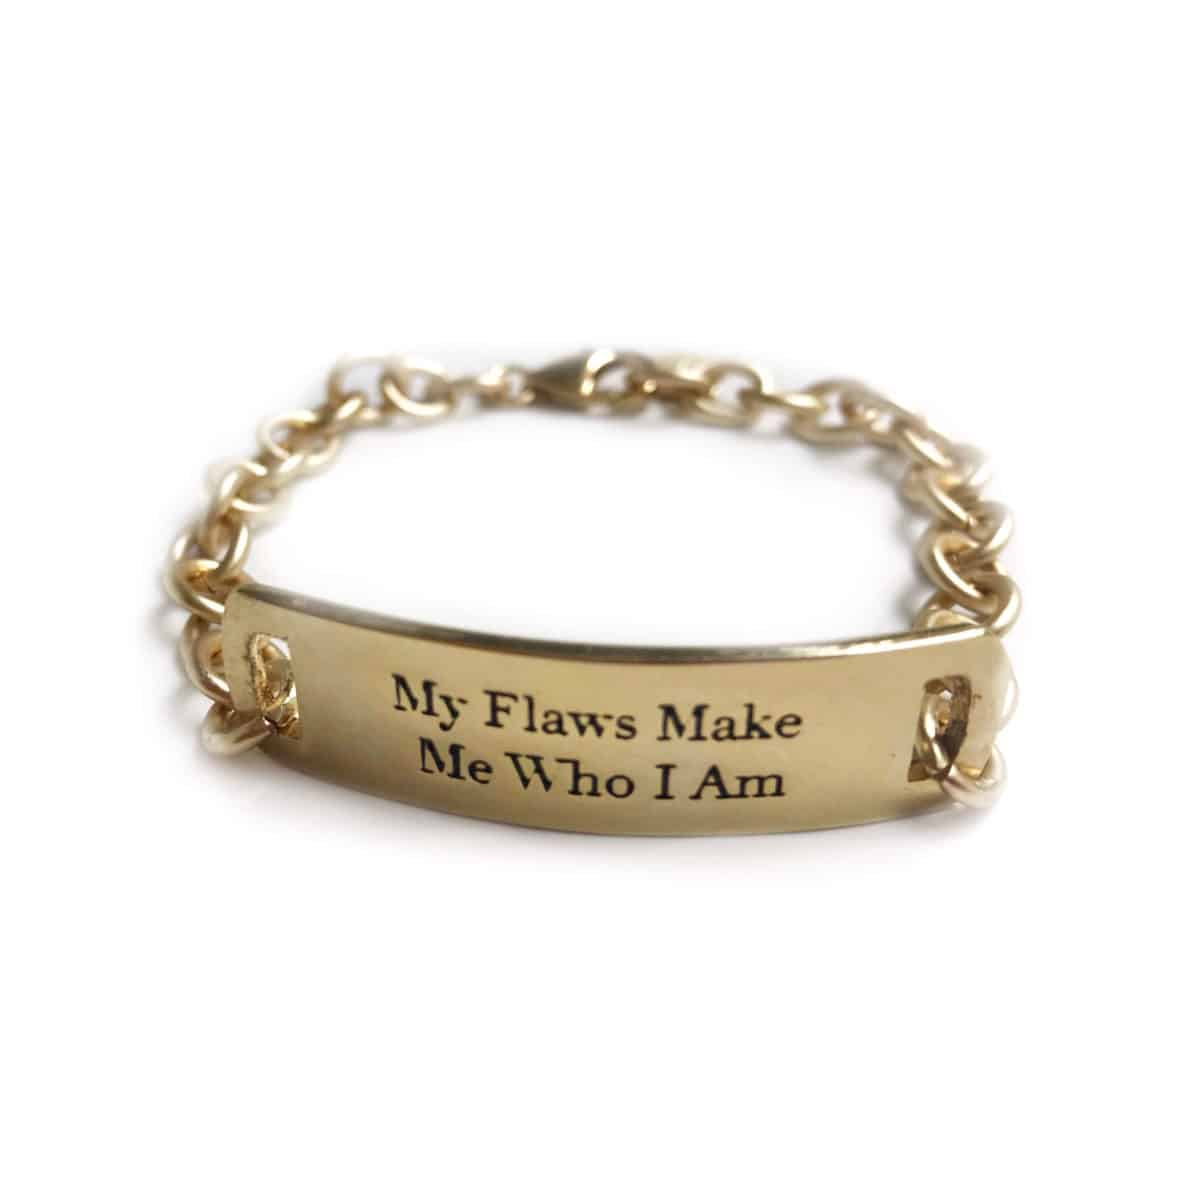 My Flaws Make Me Who I Am bracelet